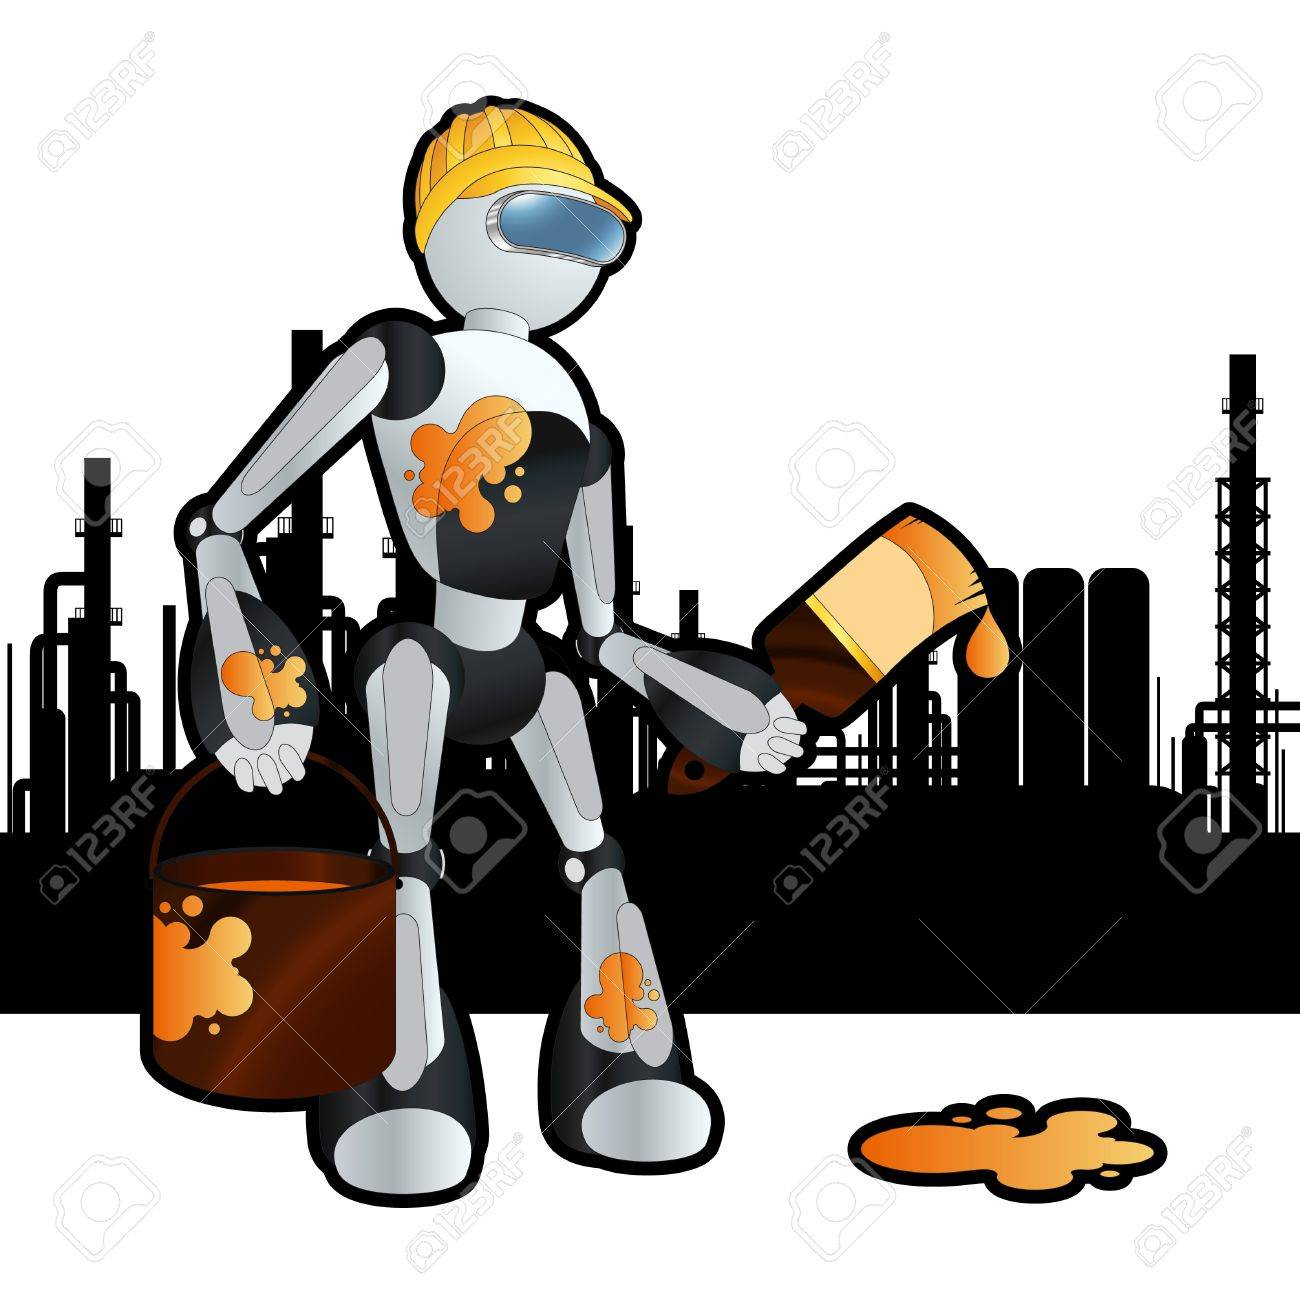 Animated construction site painter robot illustration Stock Vector - 10579667